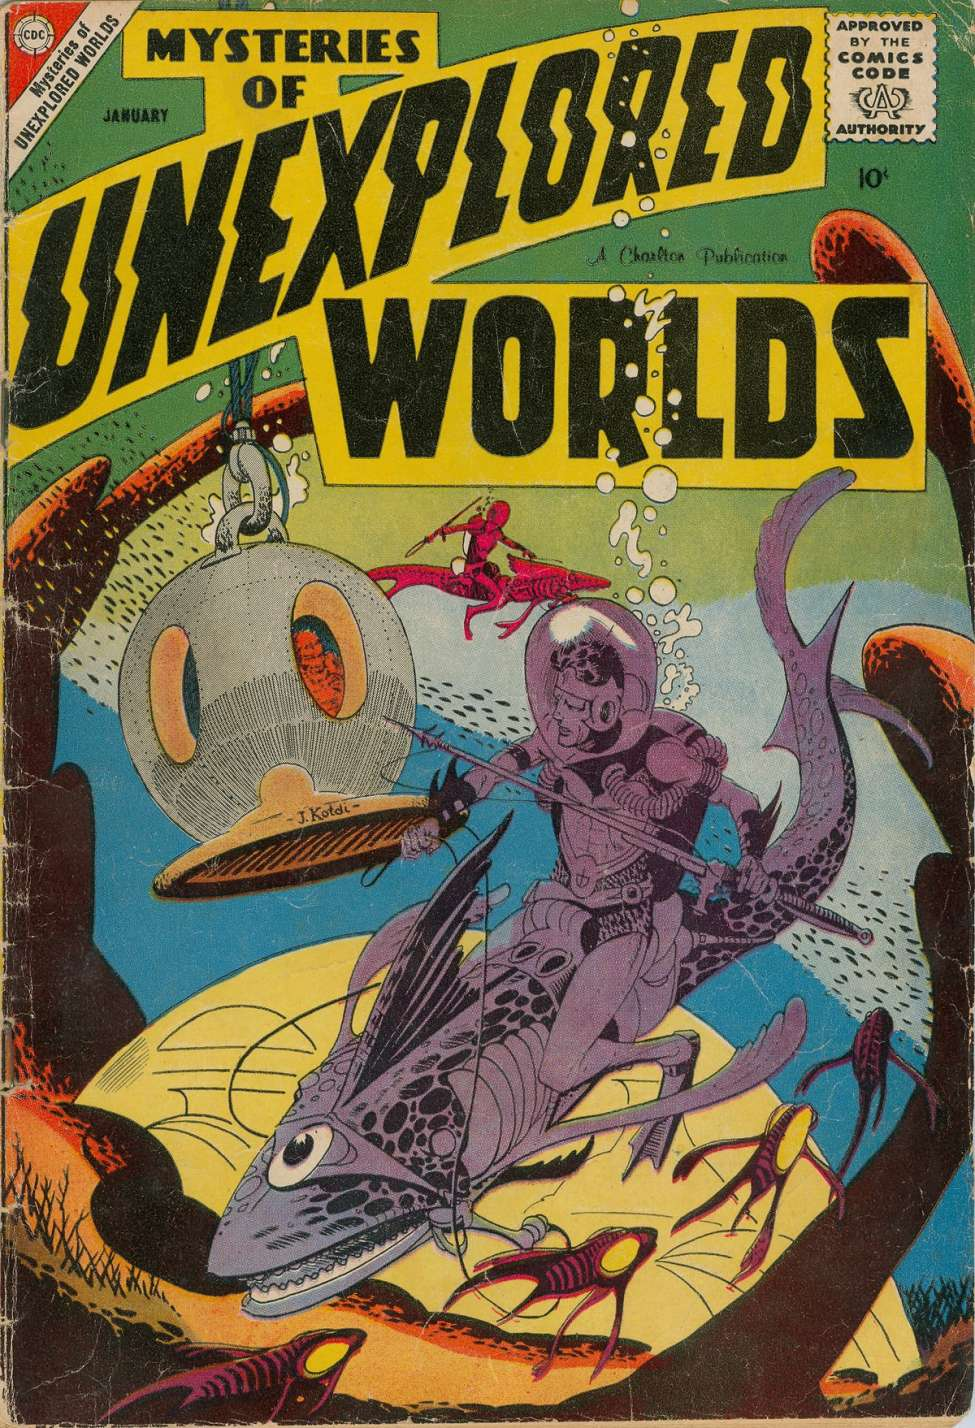 Comic Book Cover For Mysteries of Unexplored Worlds #11